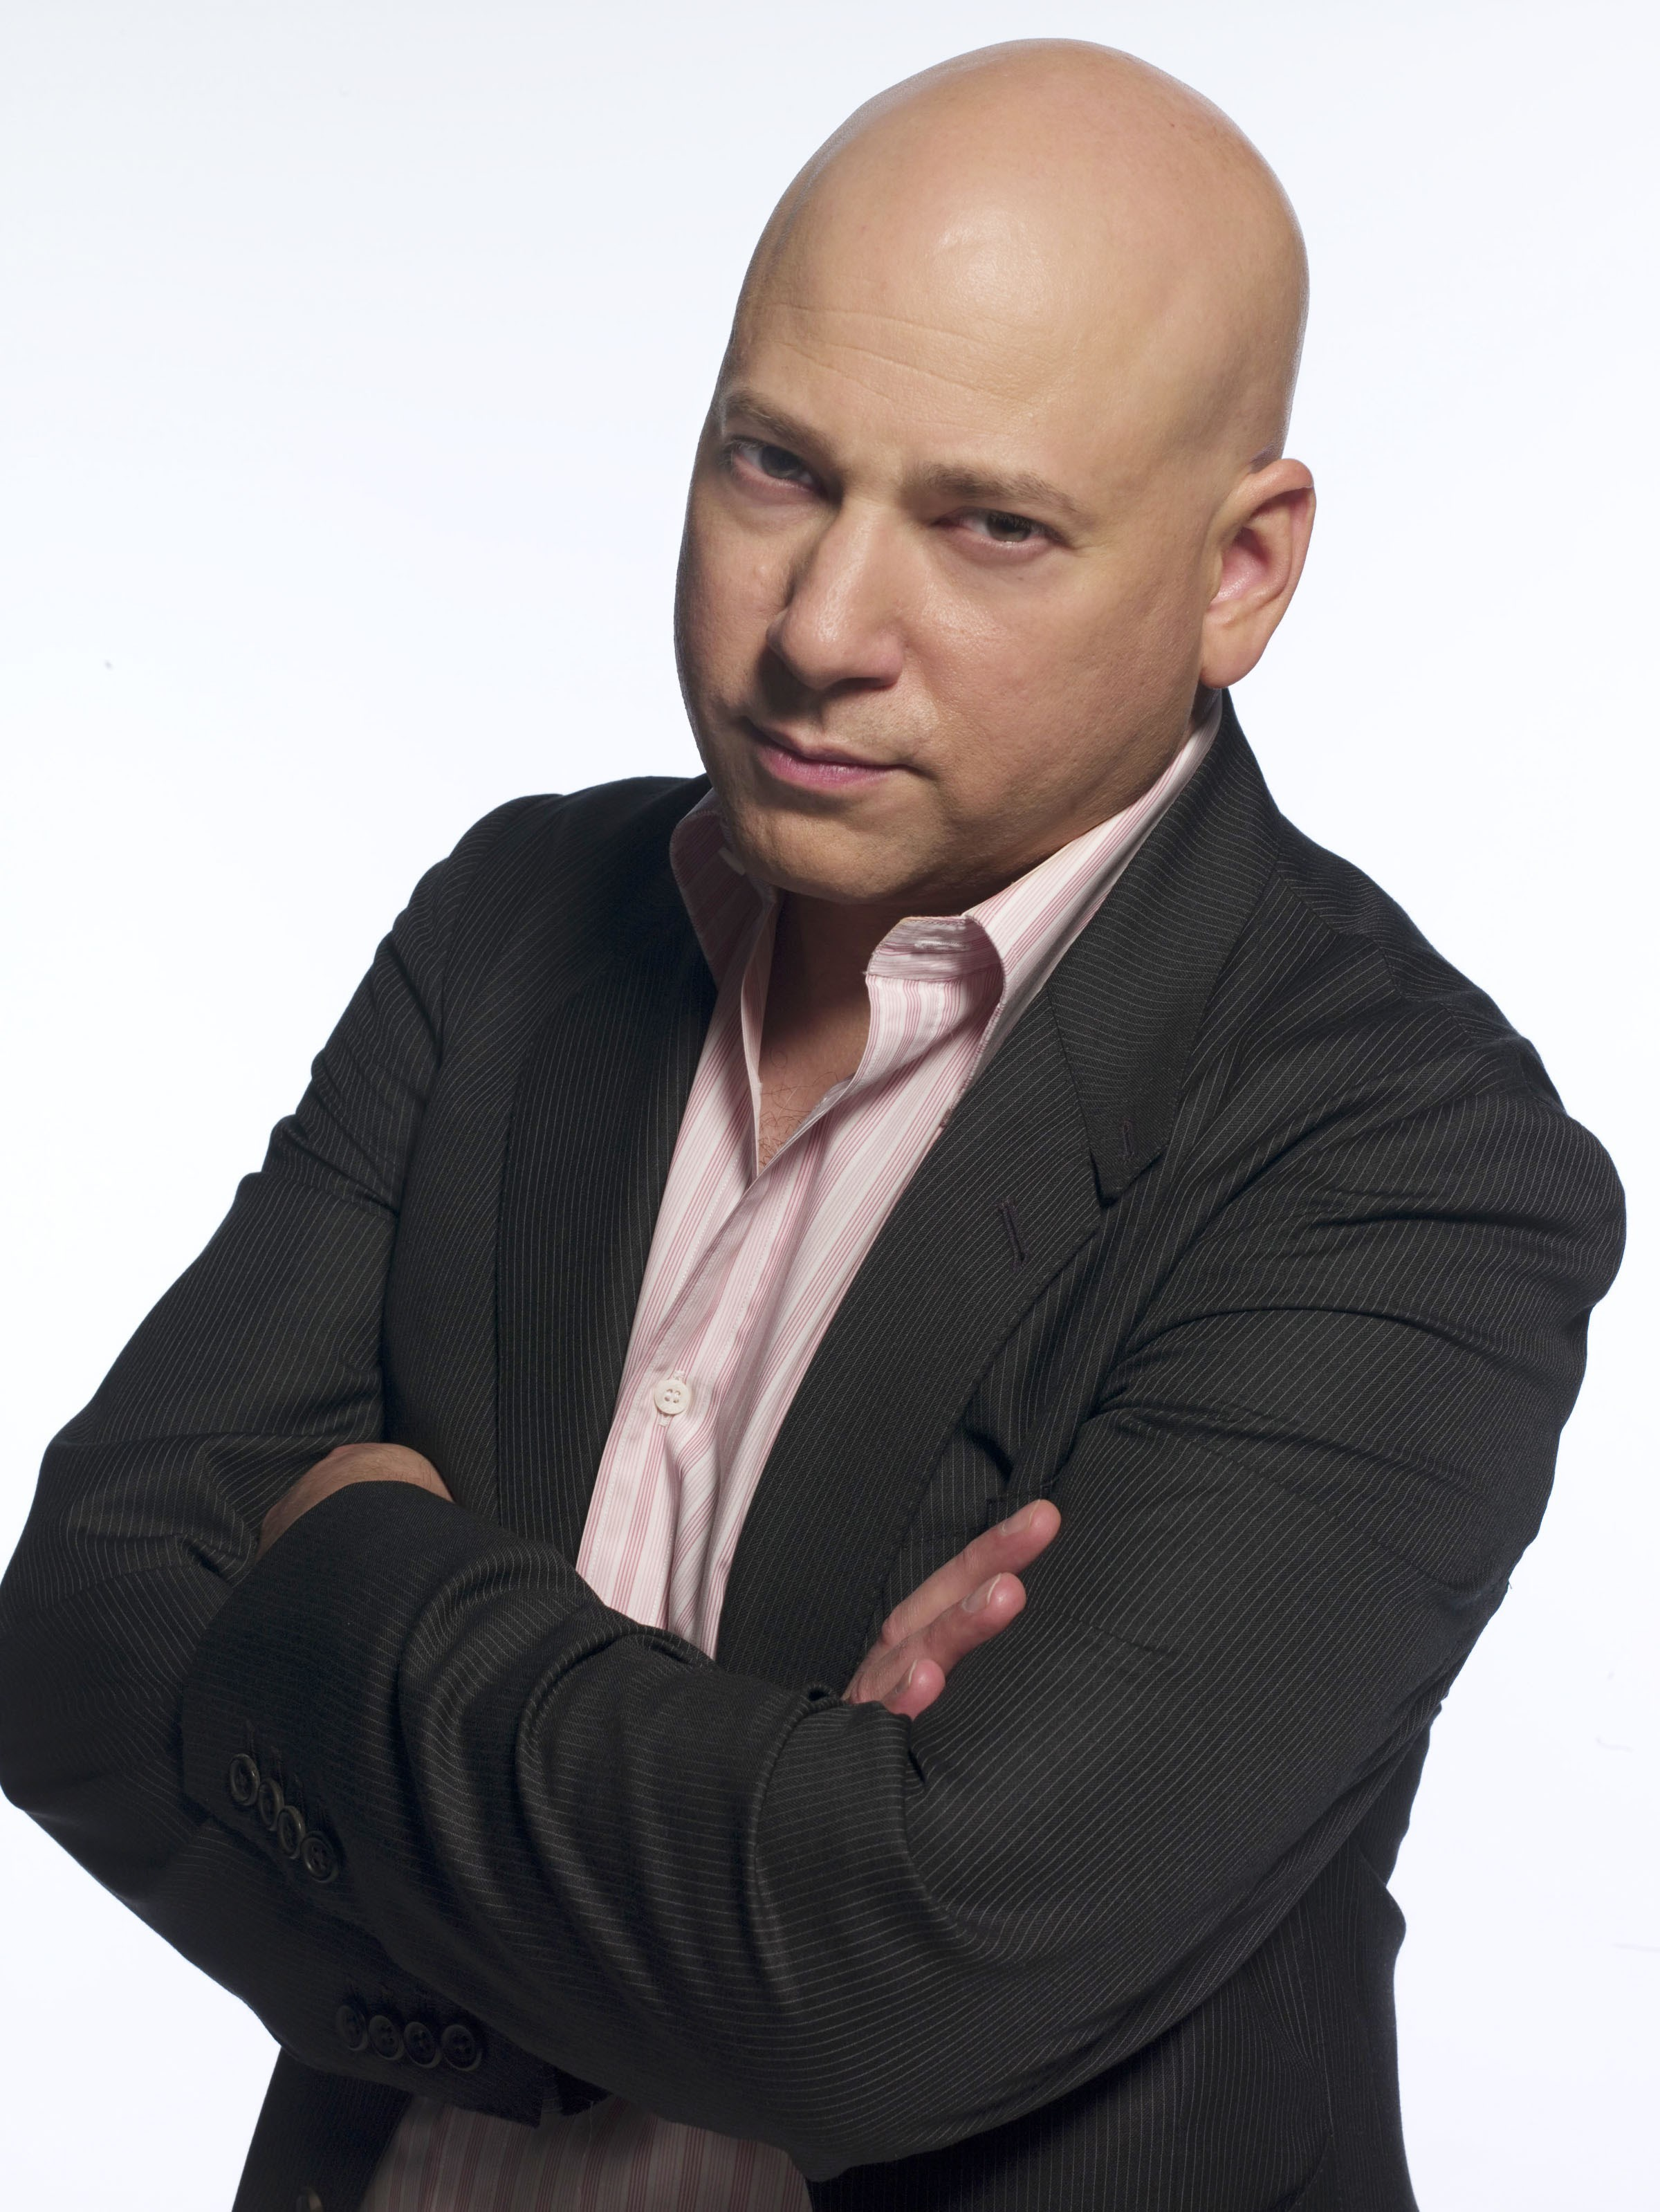 Evan Handler   Known people - famous people news and ...